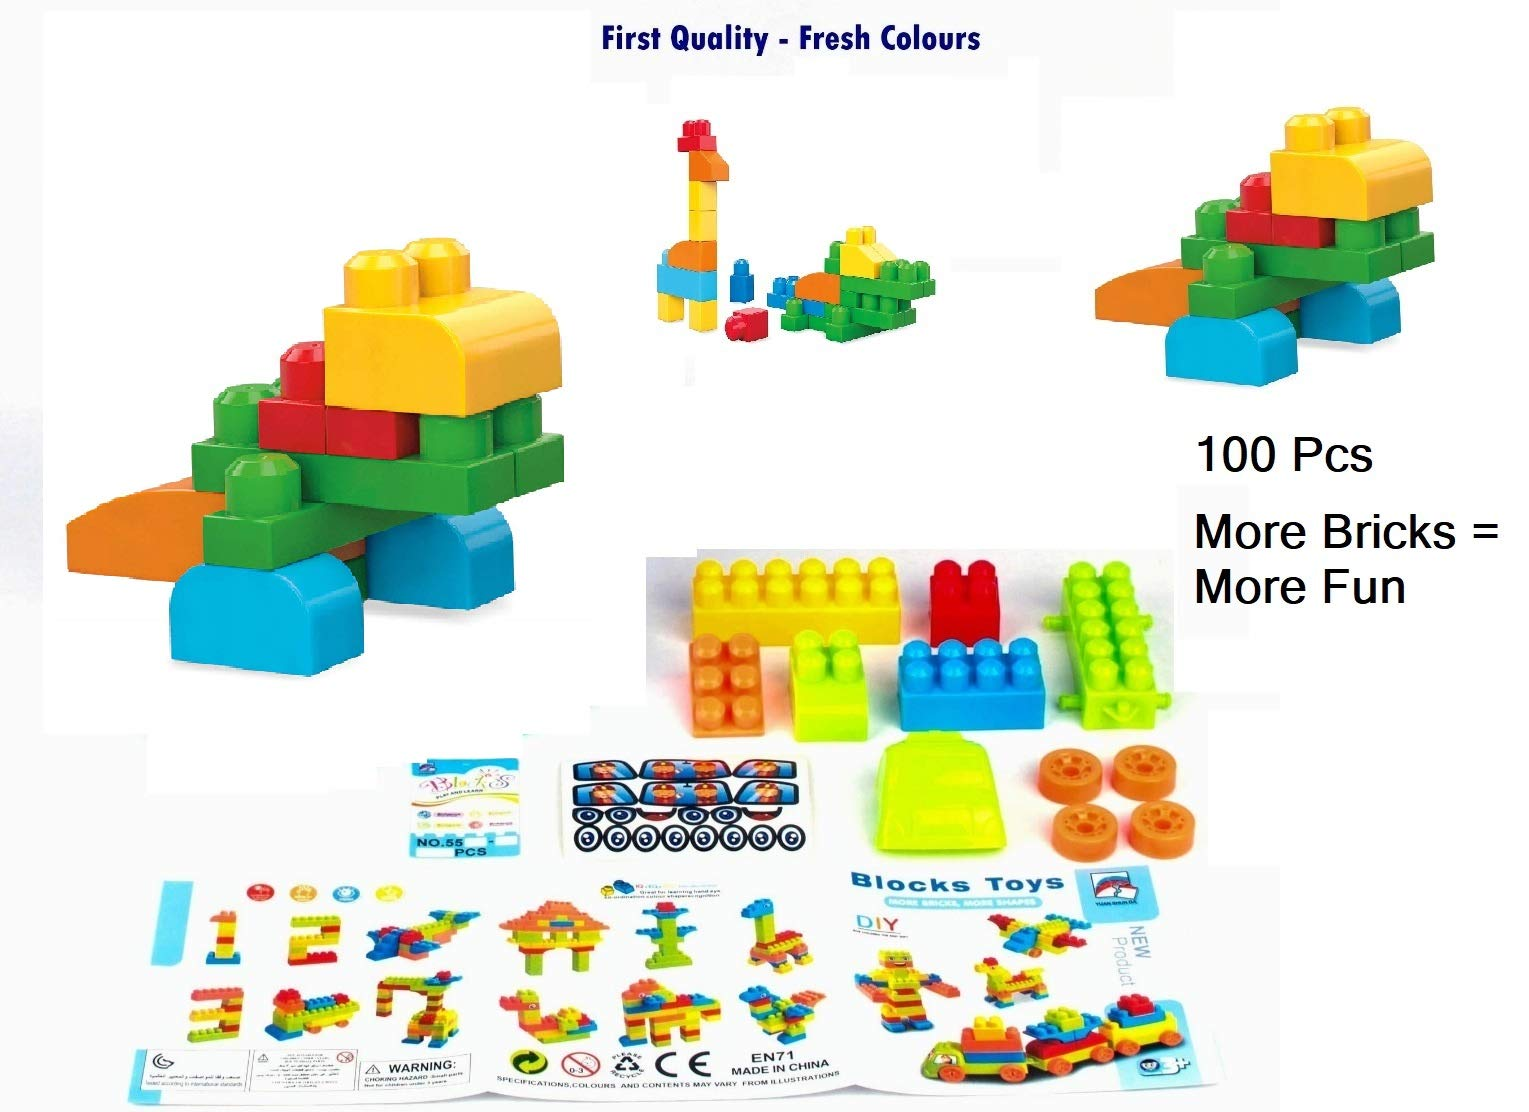 100 Marvel Trading Company Inc Assorted Color And Shape Interlocking Connecting Bricks Blocks